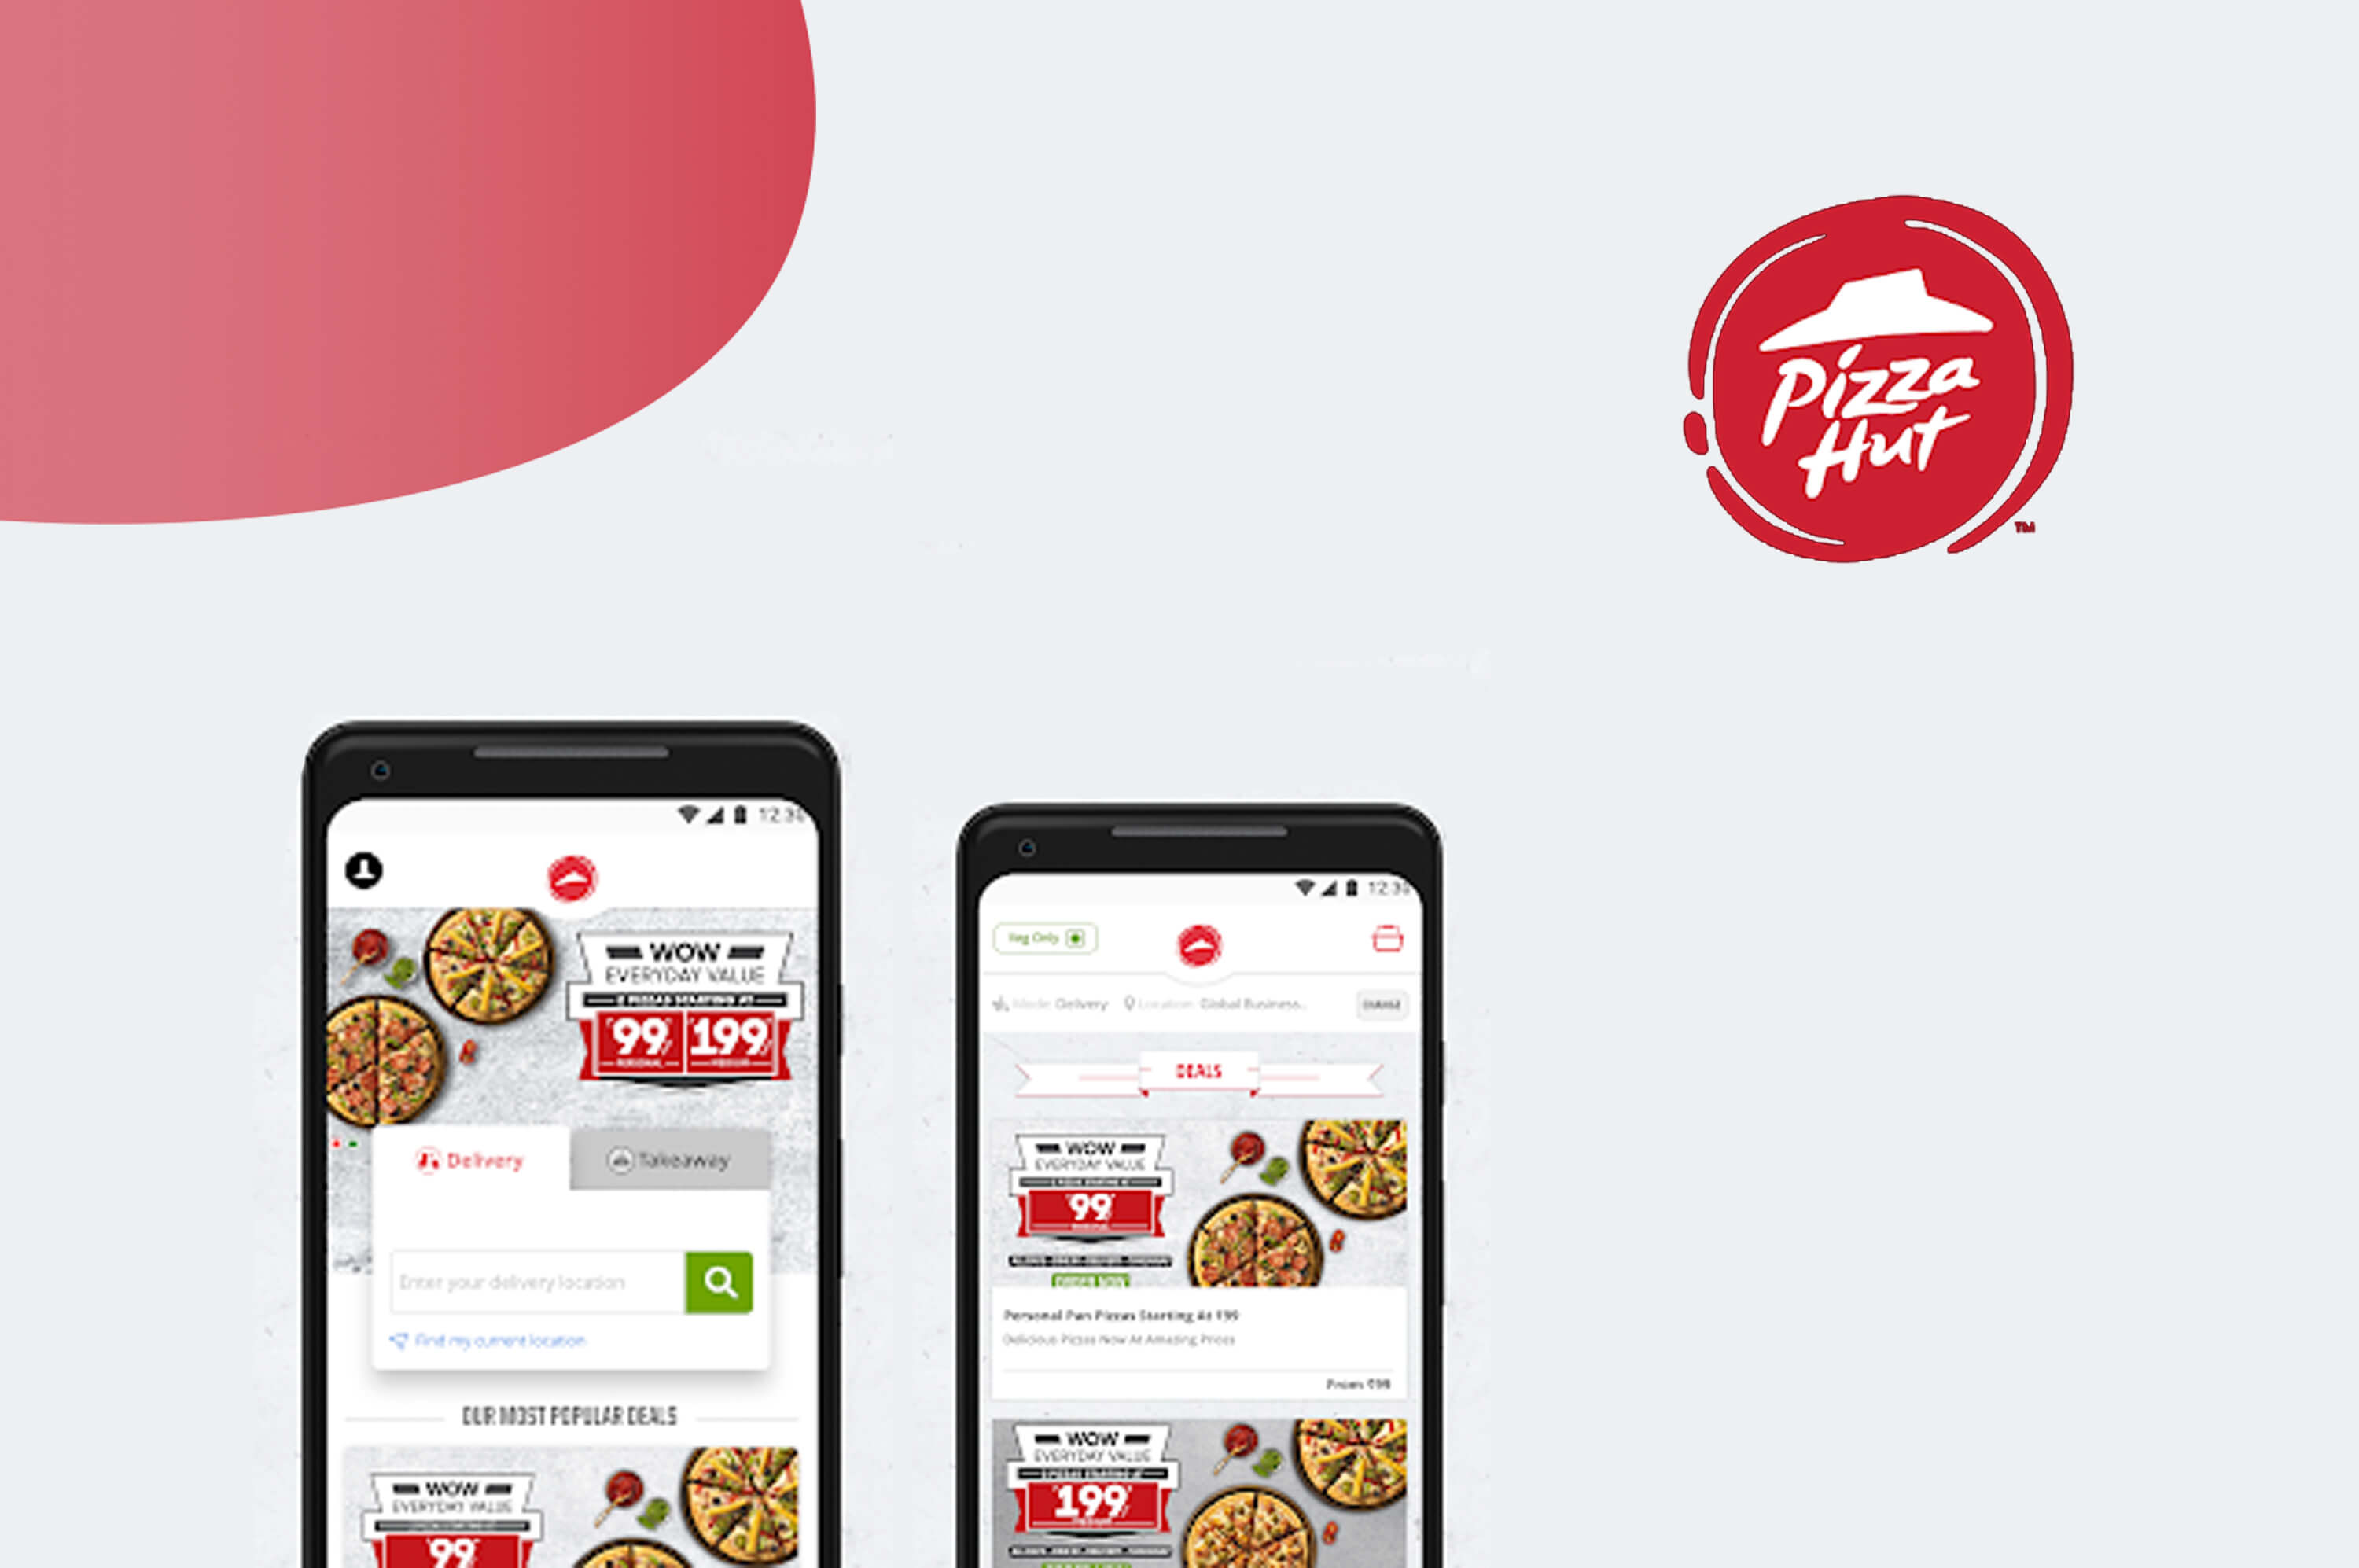 two smartphones with pizza hut is opened in the screen